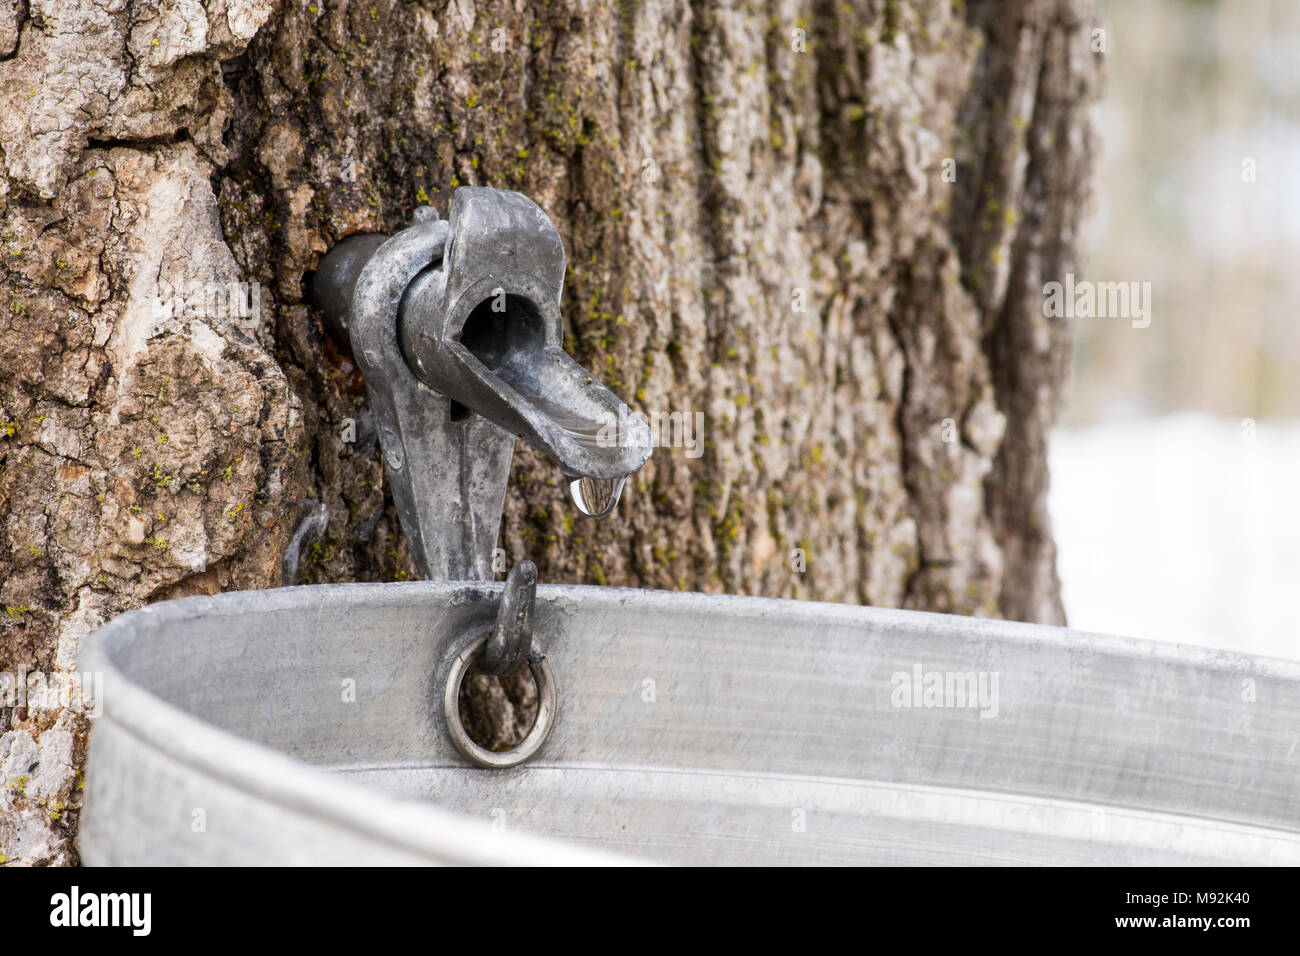 Maple syrup spigot dripping sap into bucket. - Stock Image